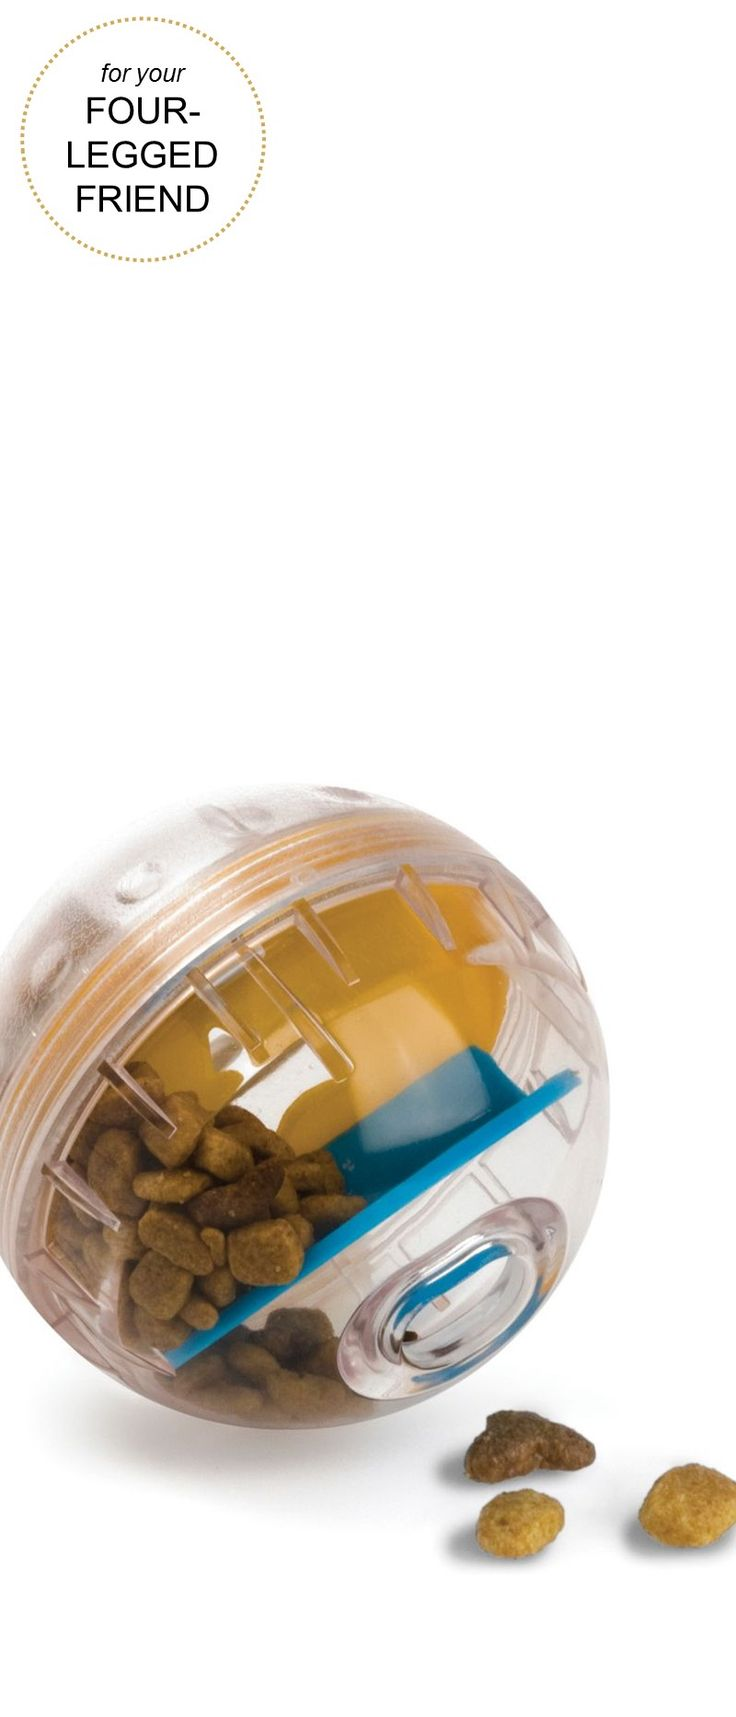 """Gifts for four-legged Friends 